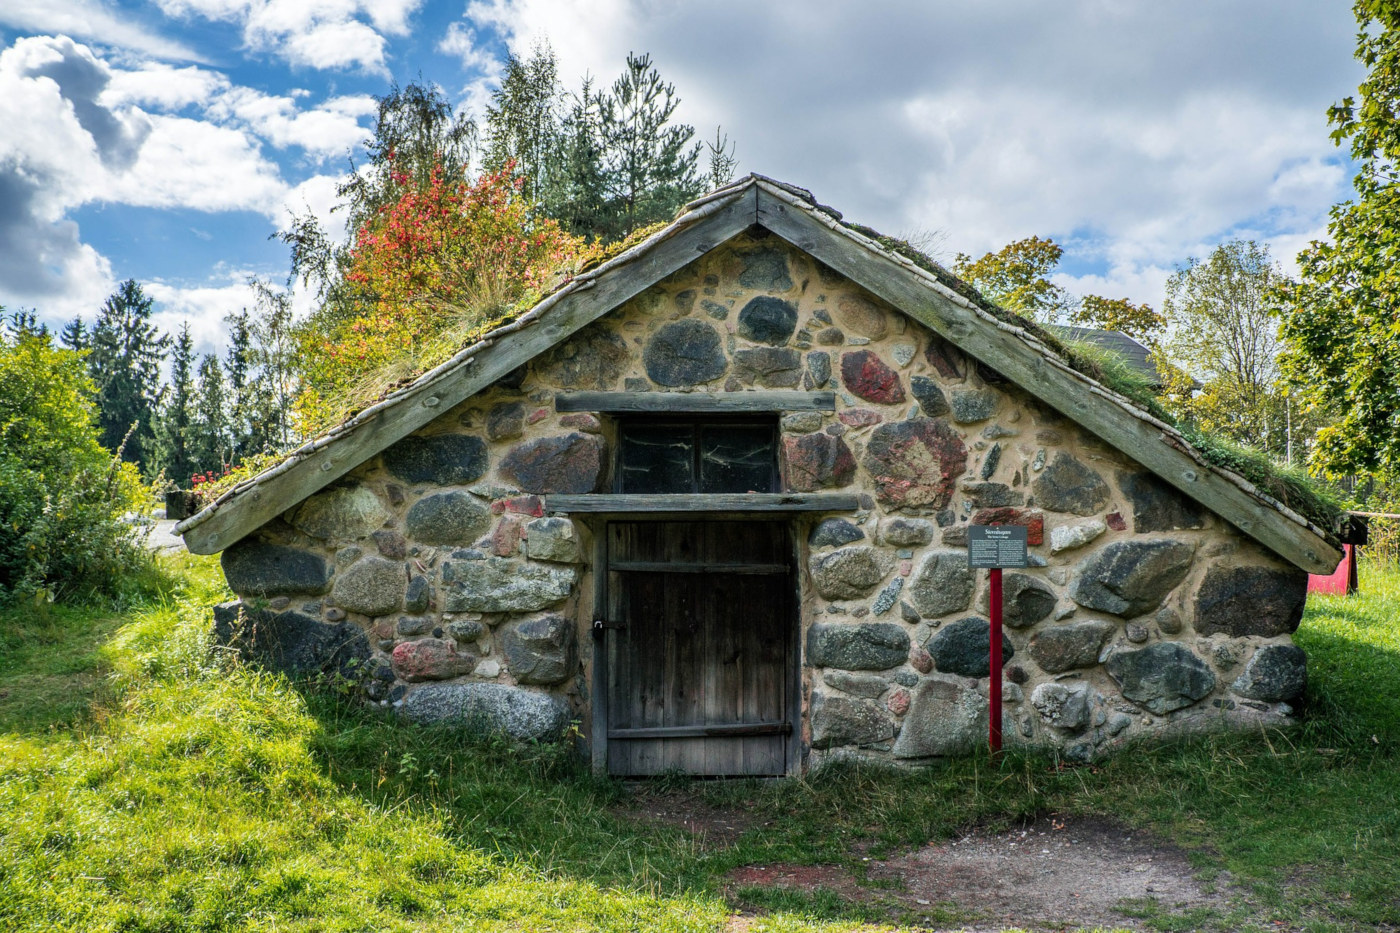 Old Swedish house, Skansen / Credit: Mariamichelle / Pixabay